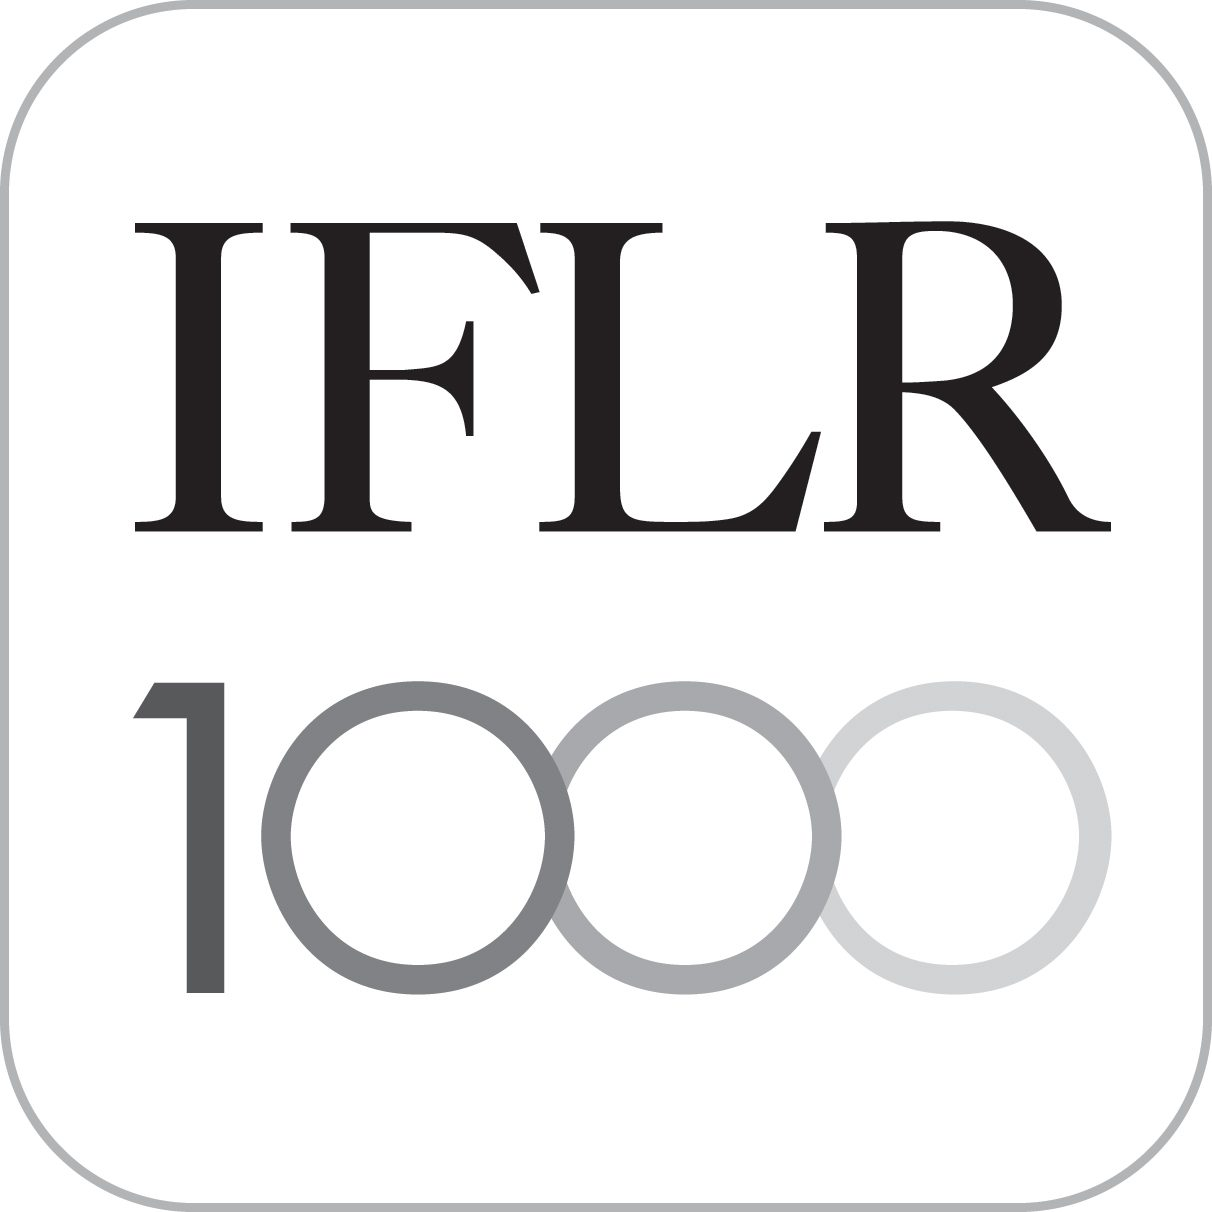 Logo of IFLR1000 - MAR & Associates membership